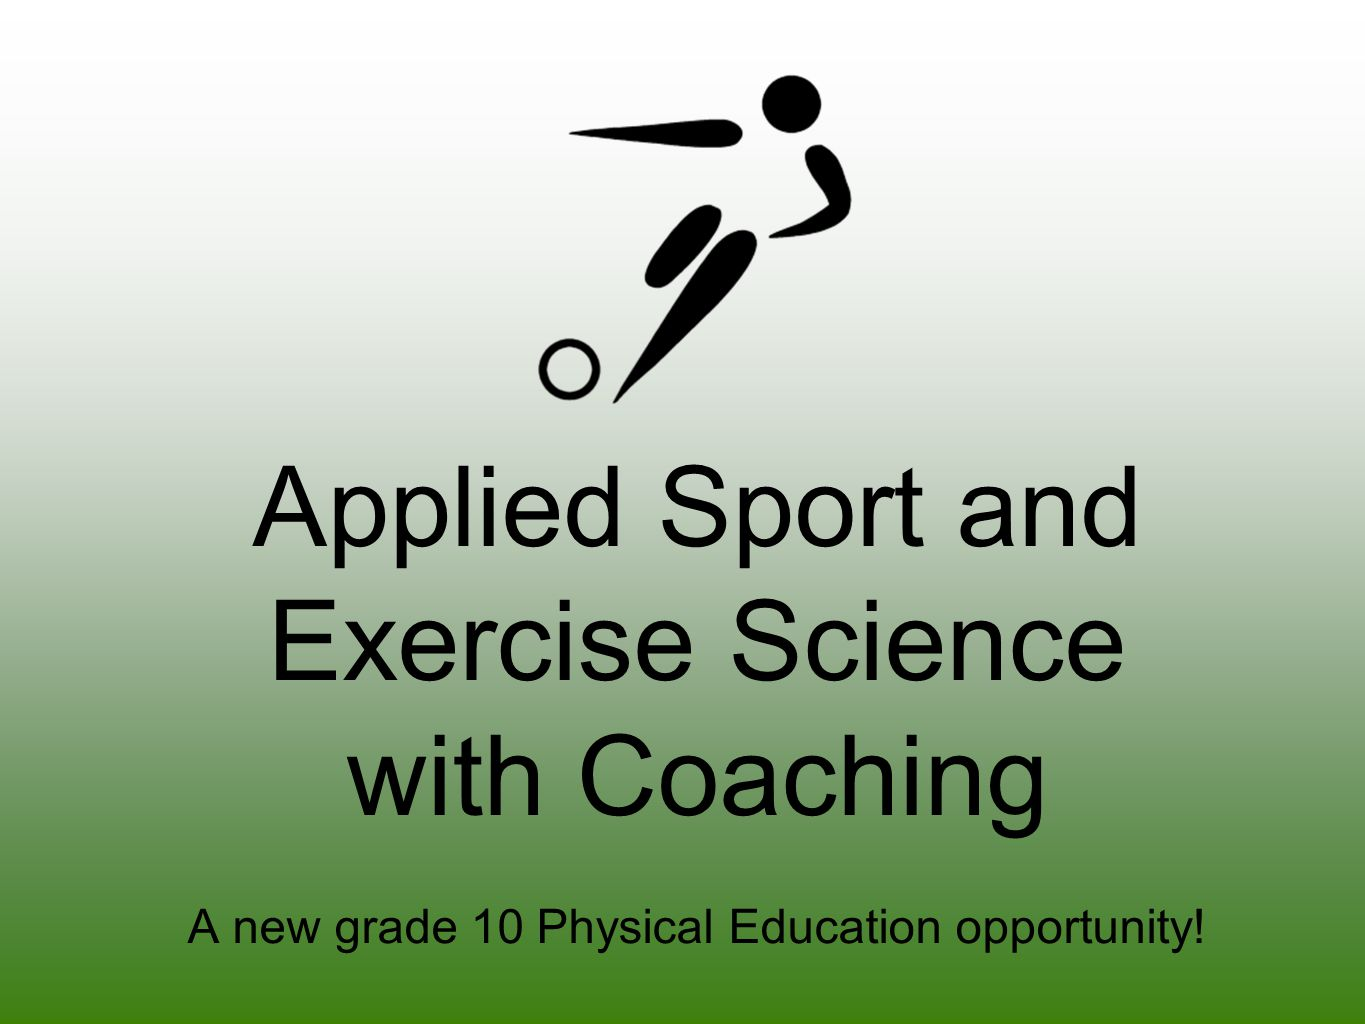 Applied Sport and Exercise Science with Coaching A new grade 10 Physical Education opportunity!